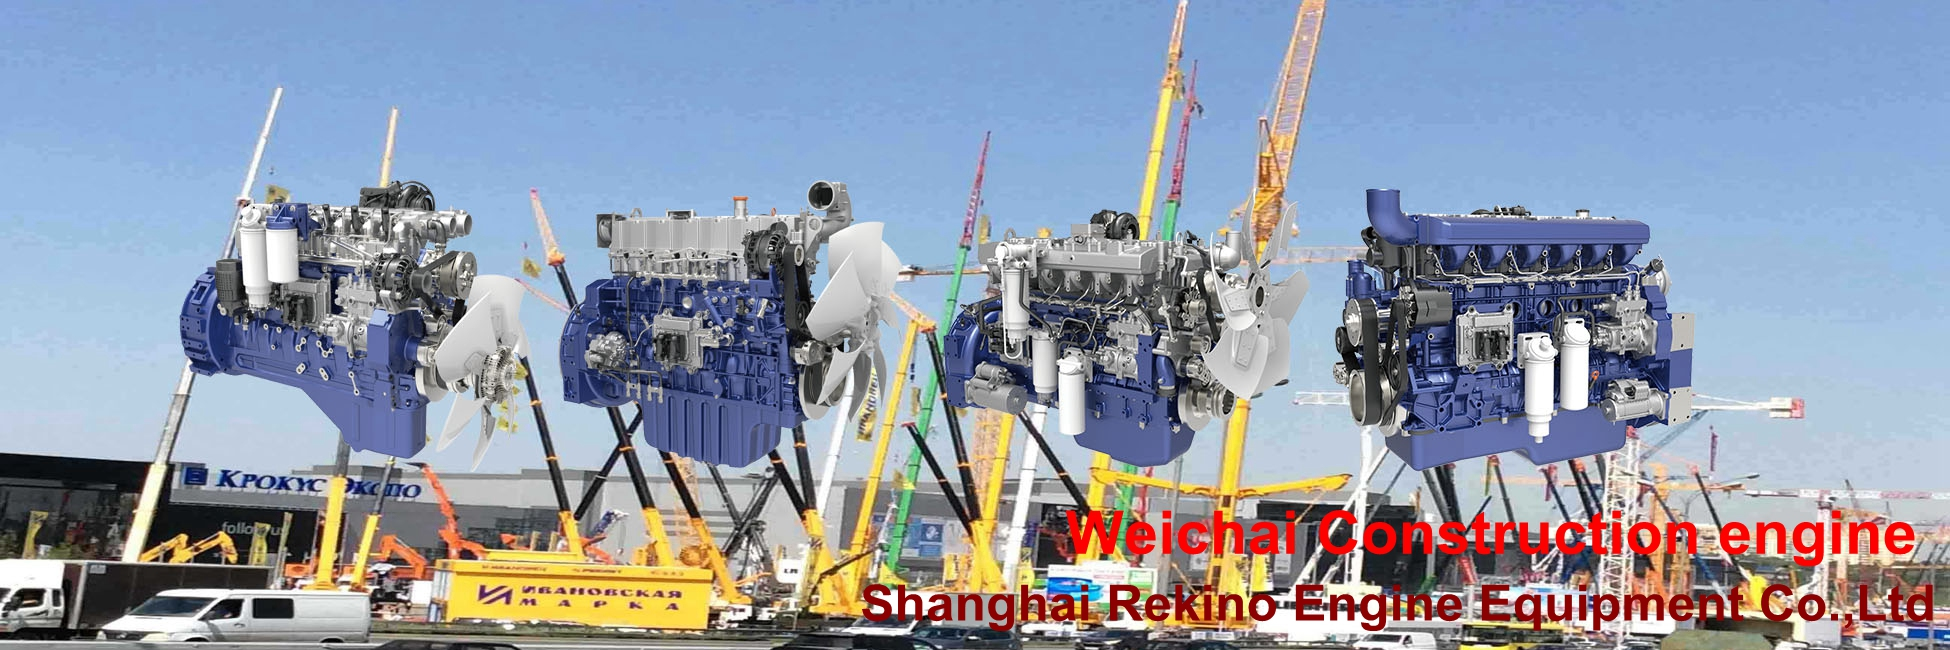 Weichai construction engine banner